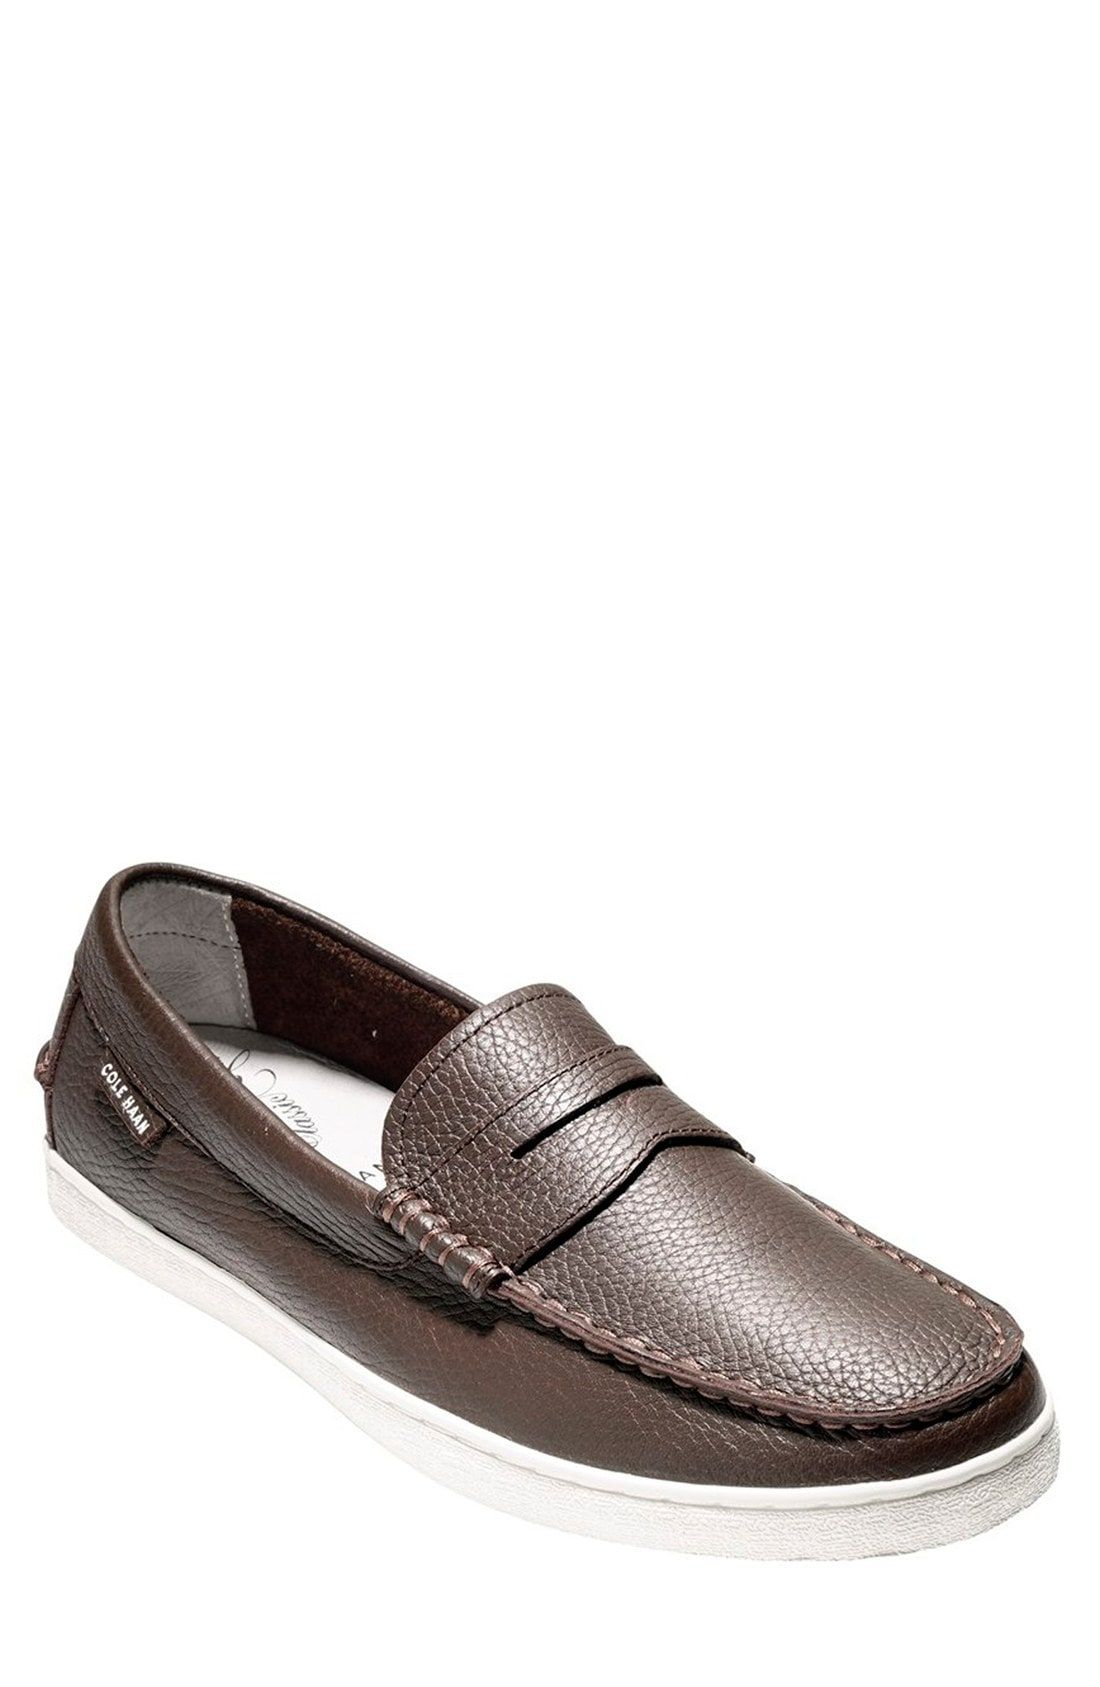 4a8783627b5 Mens Slip On Shoes. Men Shoes. Shoes Men. COLE HAAN  PINCH  PENNY LOAFER.   colehaan  shoes Penny Loafers